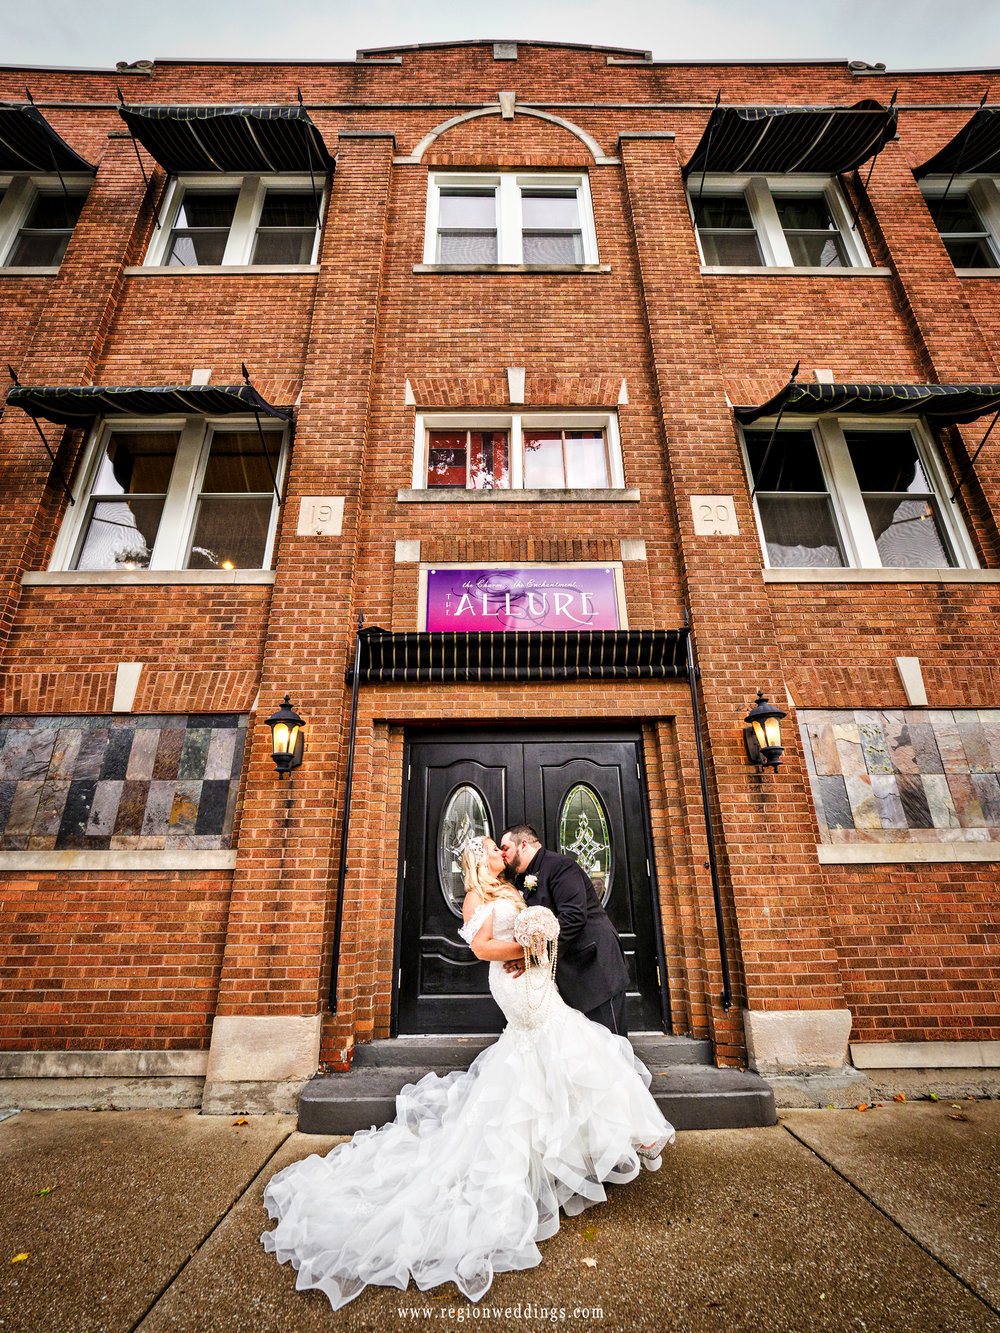 The groom dips his bride in front of The Allure wedding venue in Laporte, Indiana.